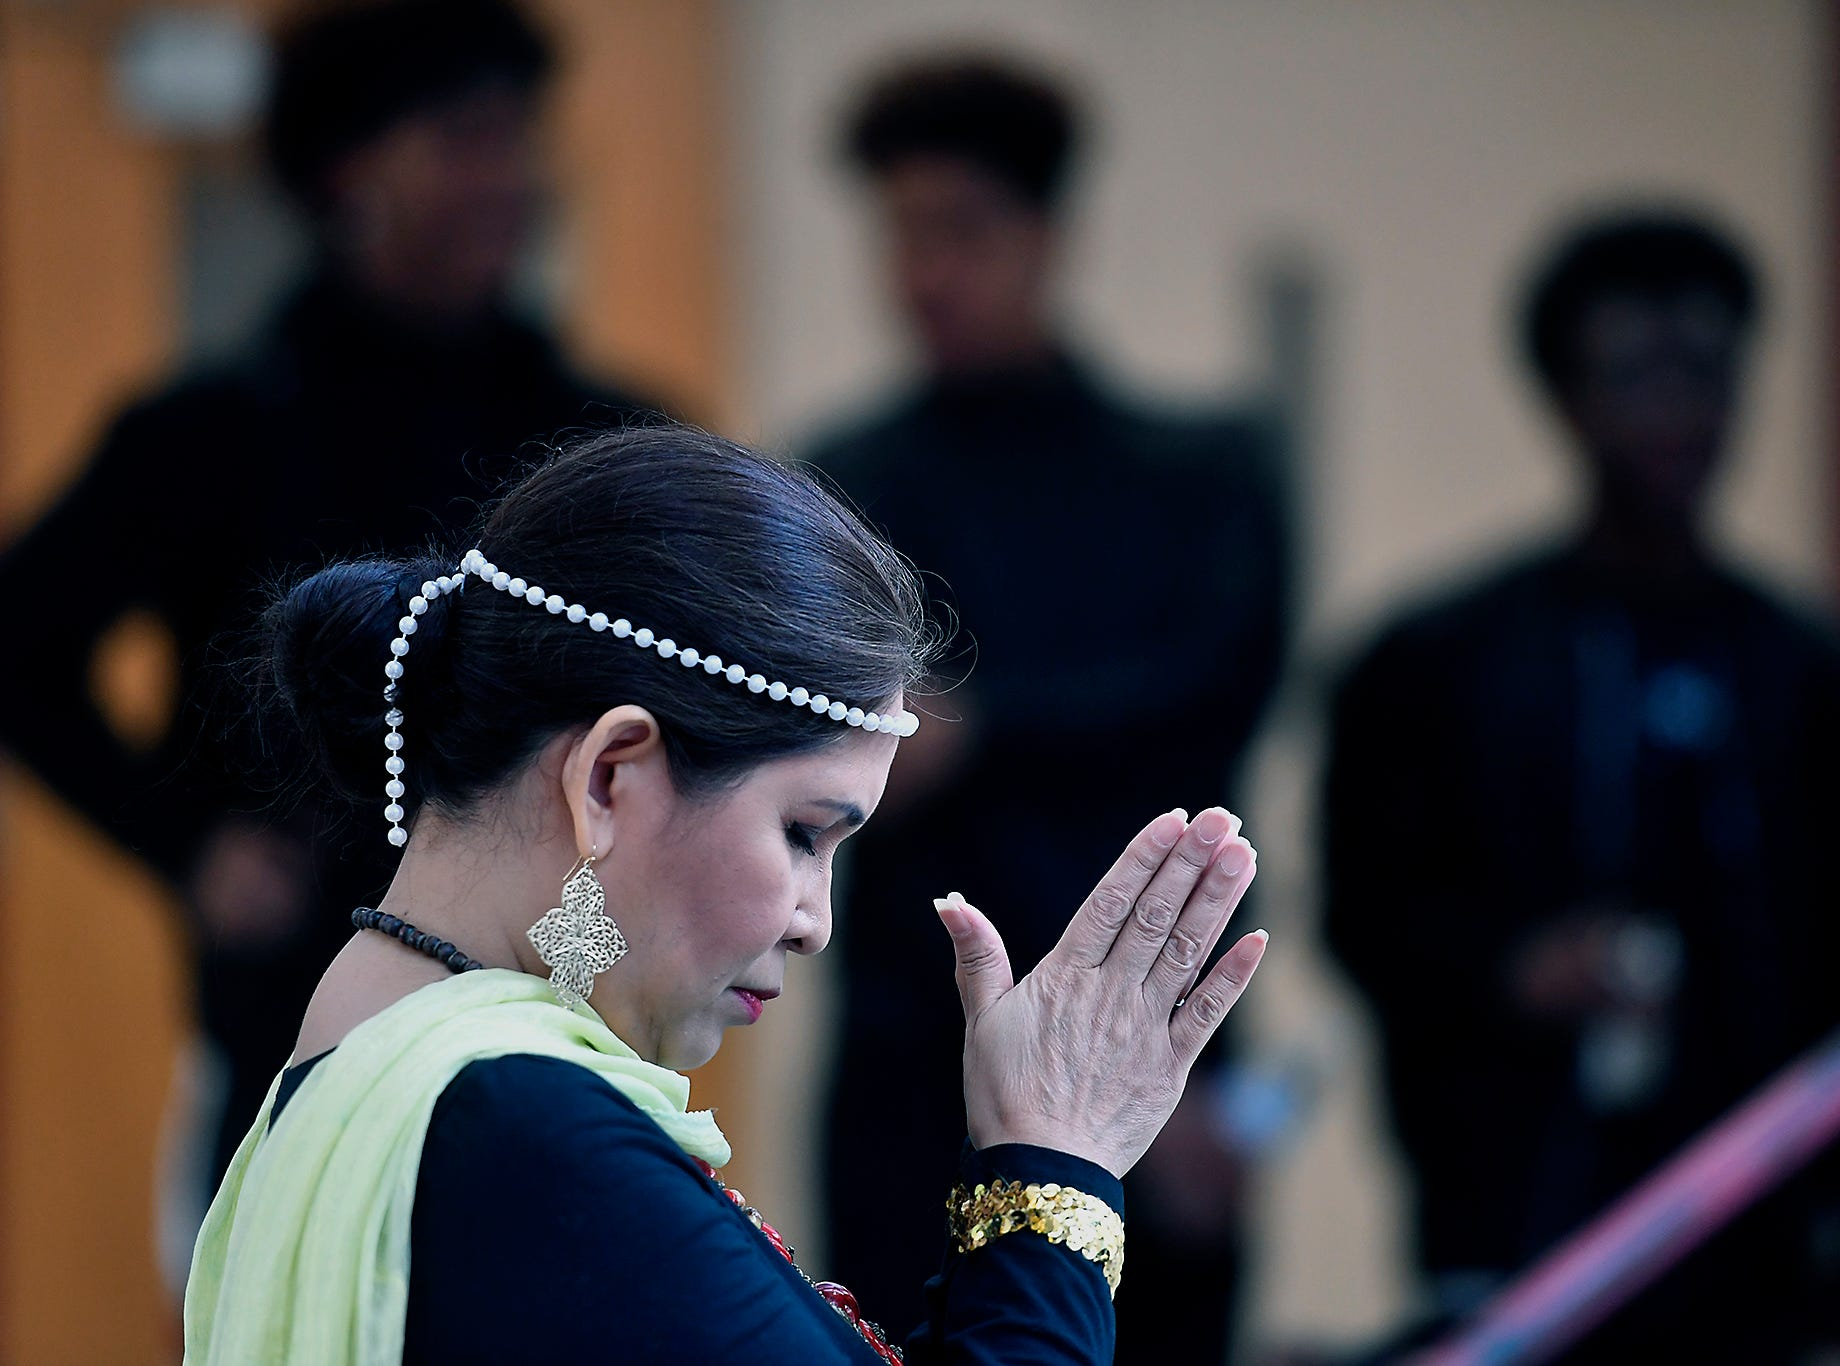 Emy Delgaudio of the Kalayaan USA Cultural Ensemble, prepares to perform traditional Filipino dance during the 13th Annual Diversity Celebration at Central York High School, Thursday, April 11, 2019.John A. Pavoncello photo